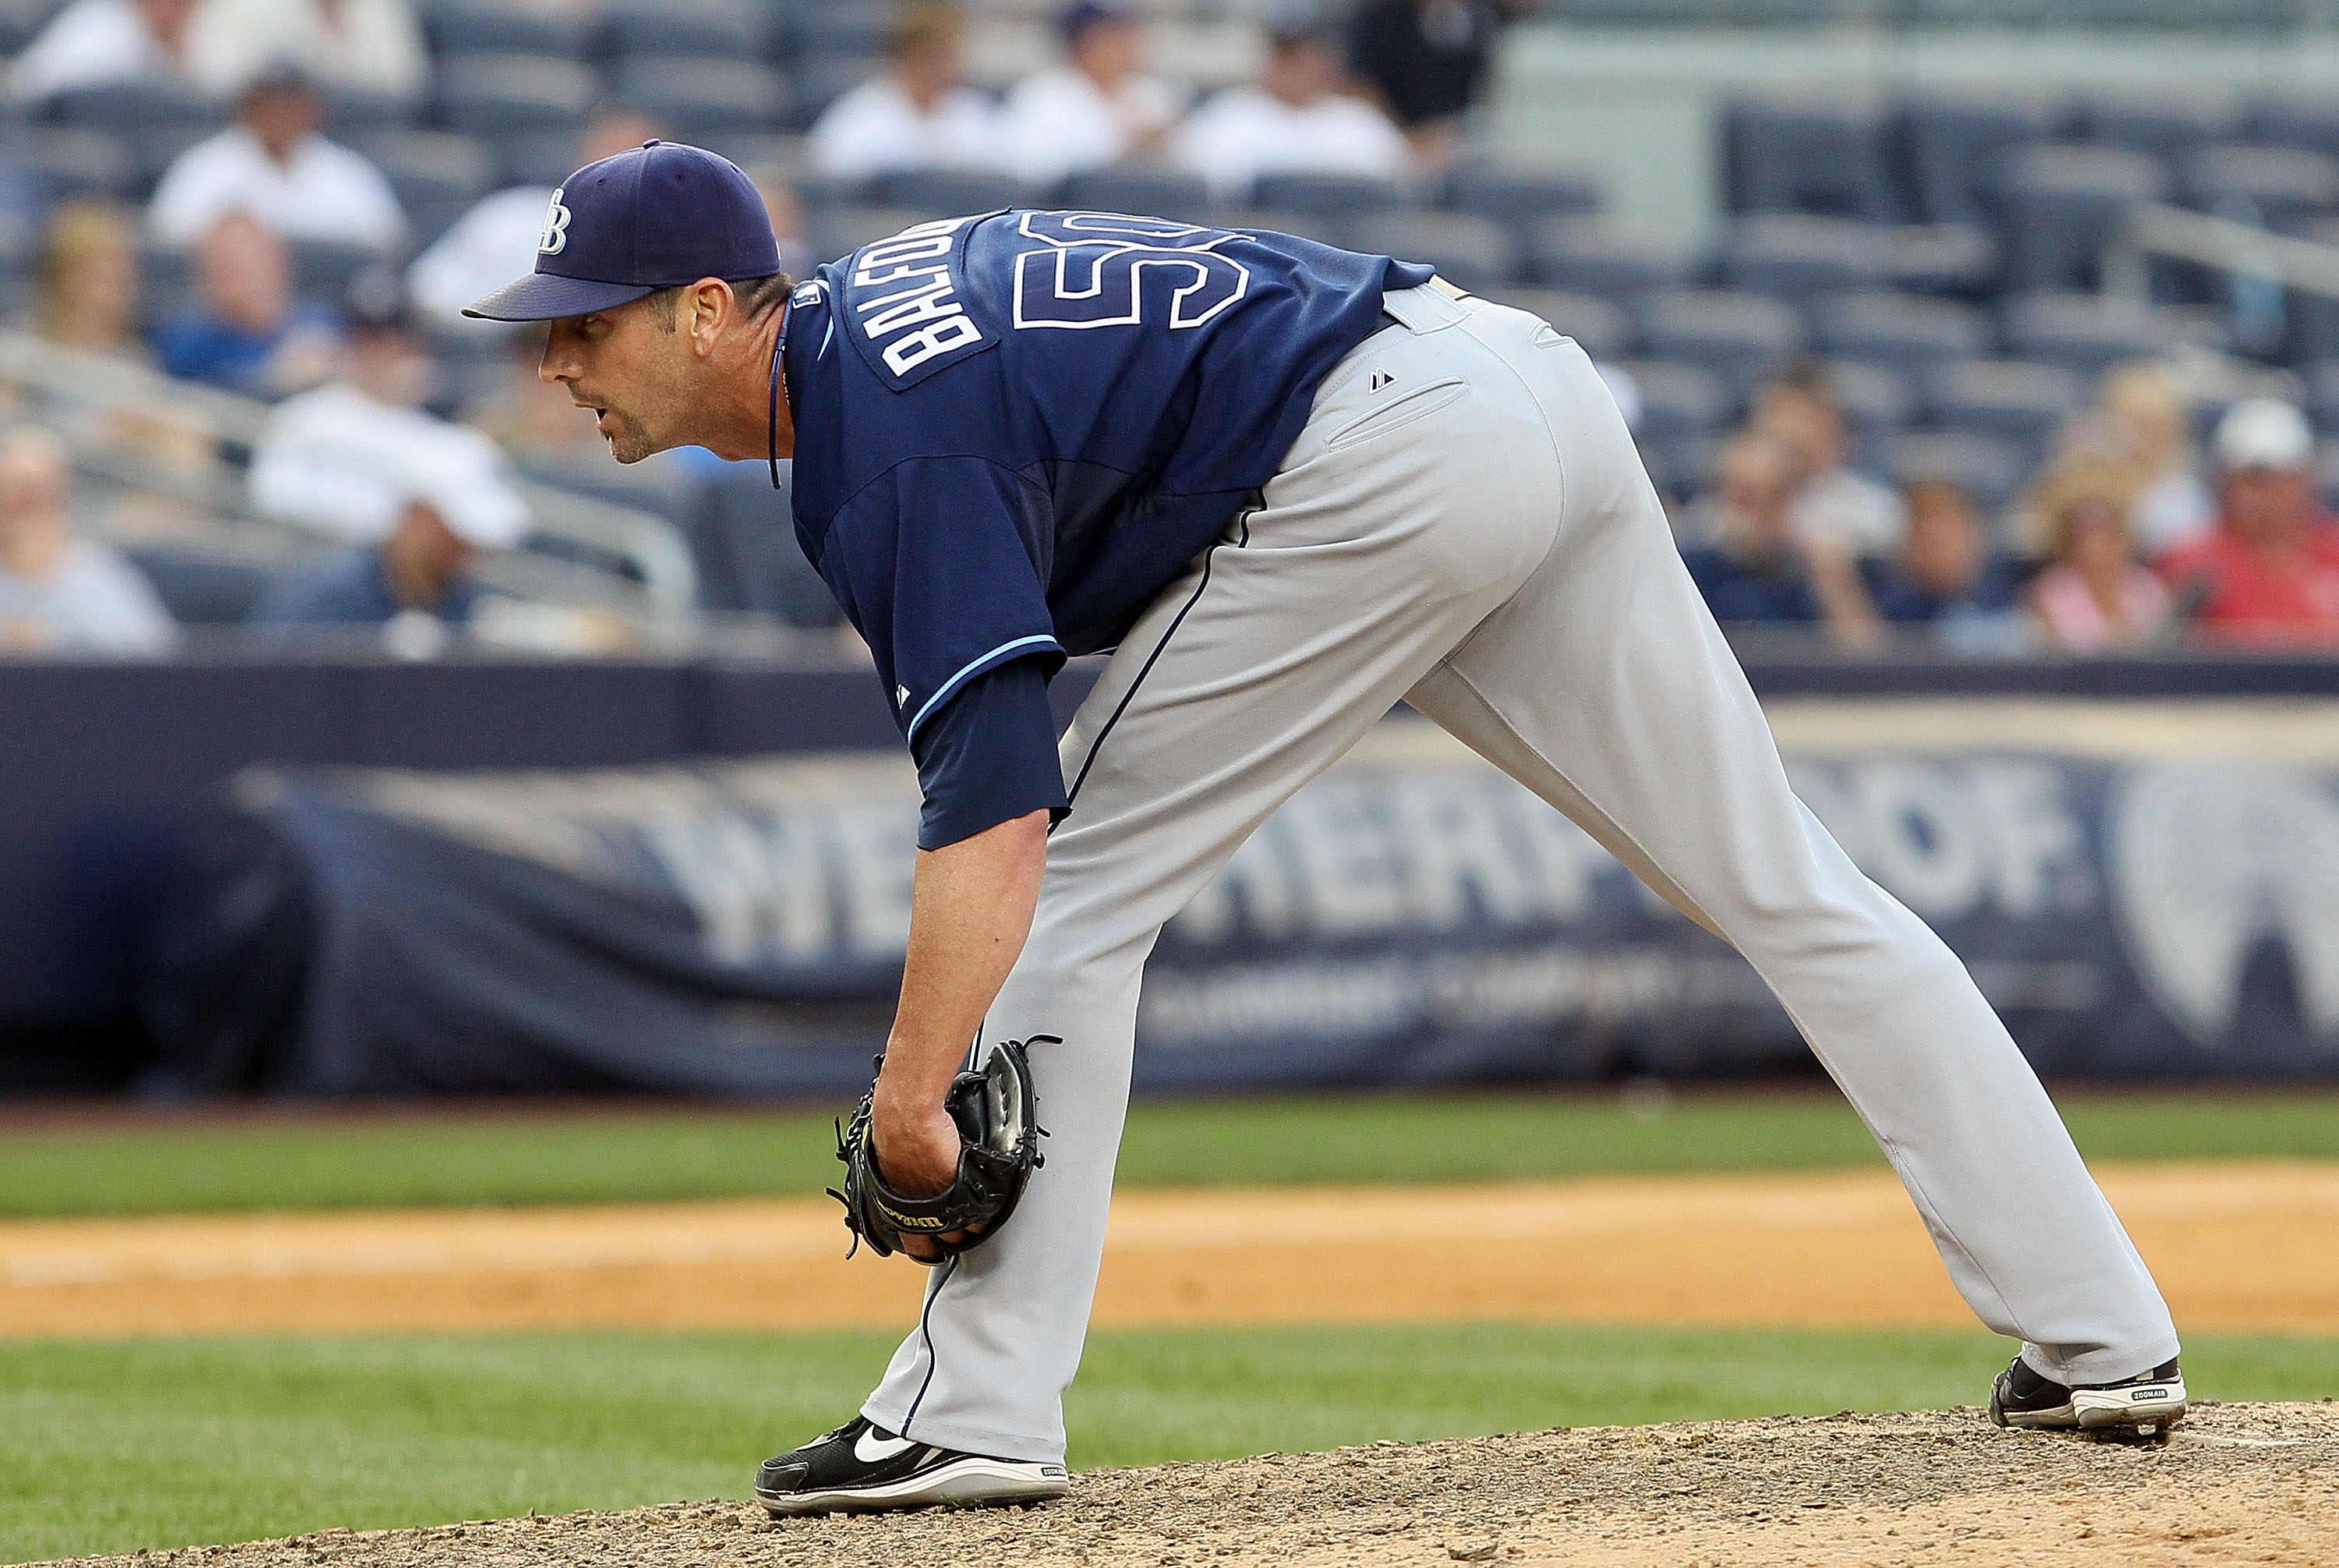 NEW YORK - JULY 17:  Grant Balfour #50 of the Tampa Bay Rays delivers a pitch against the New York Yankees on July 17, 2010 at Yankee Stadium in the Bronx borough of New York City. The Rays defeated the Yankees 10-5.  (Photo by Jim McIsaac/Getty Images)